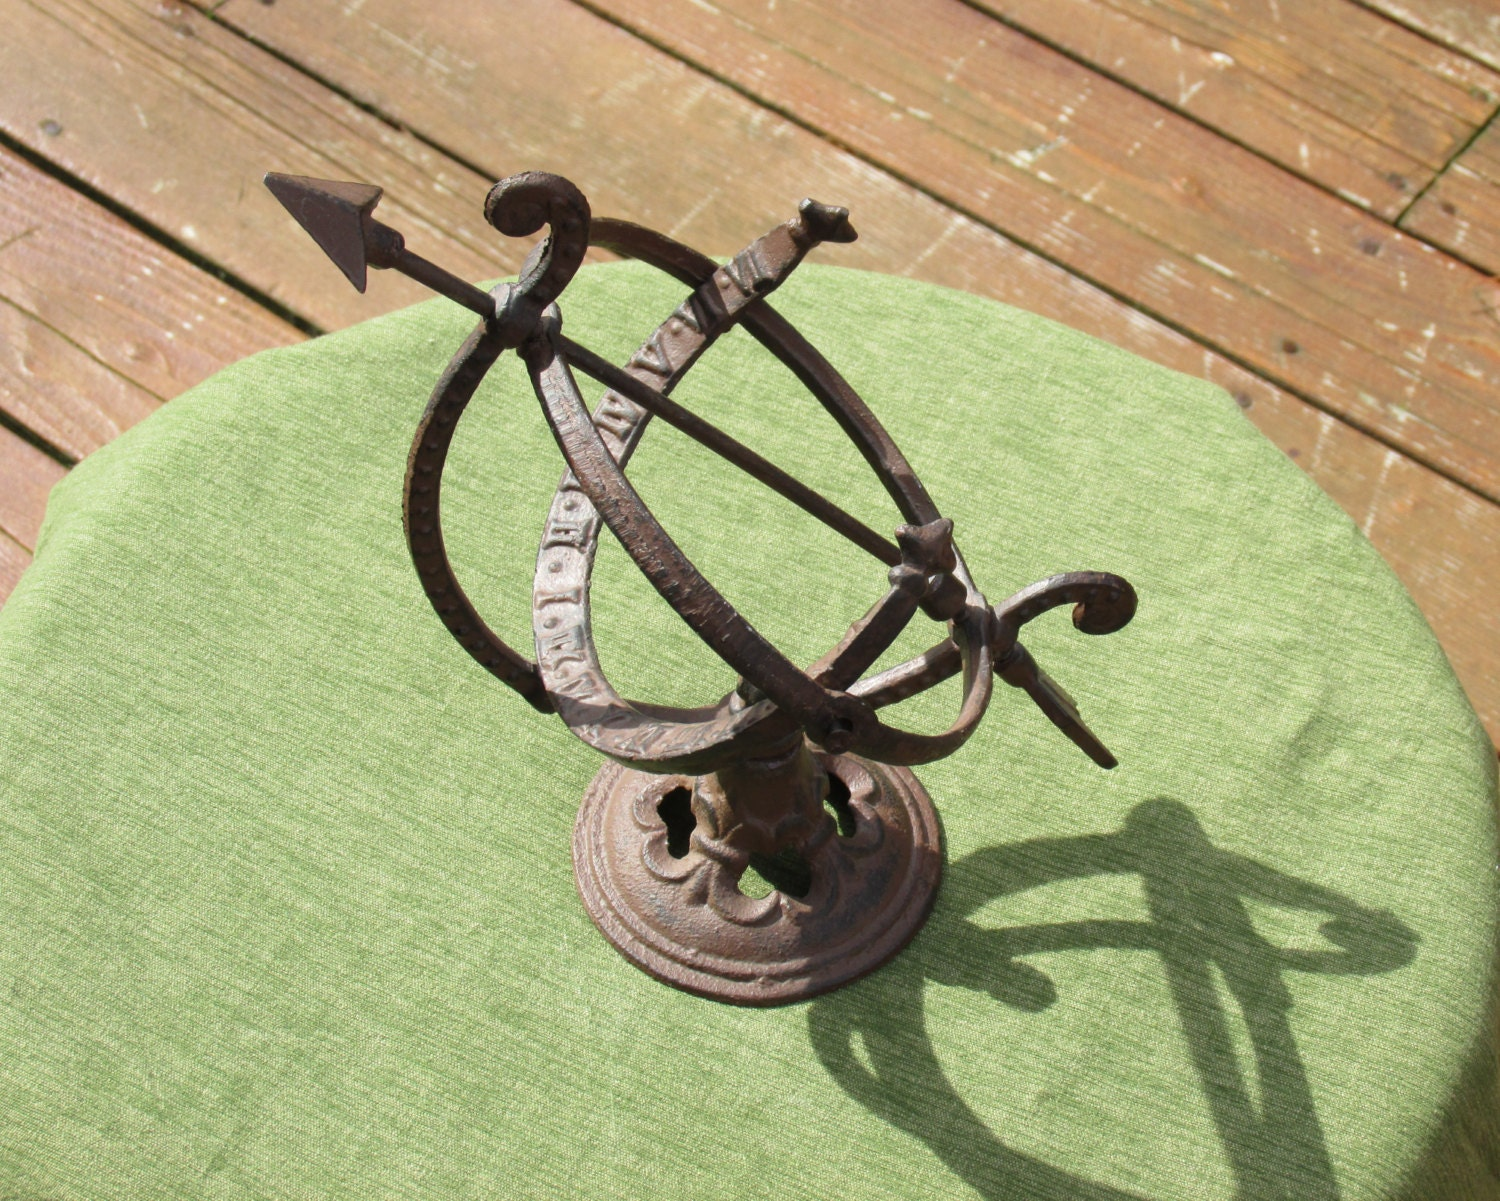 Vintage Rustic Old Cast Iron Zodiac Armillary Nautical Sphere